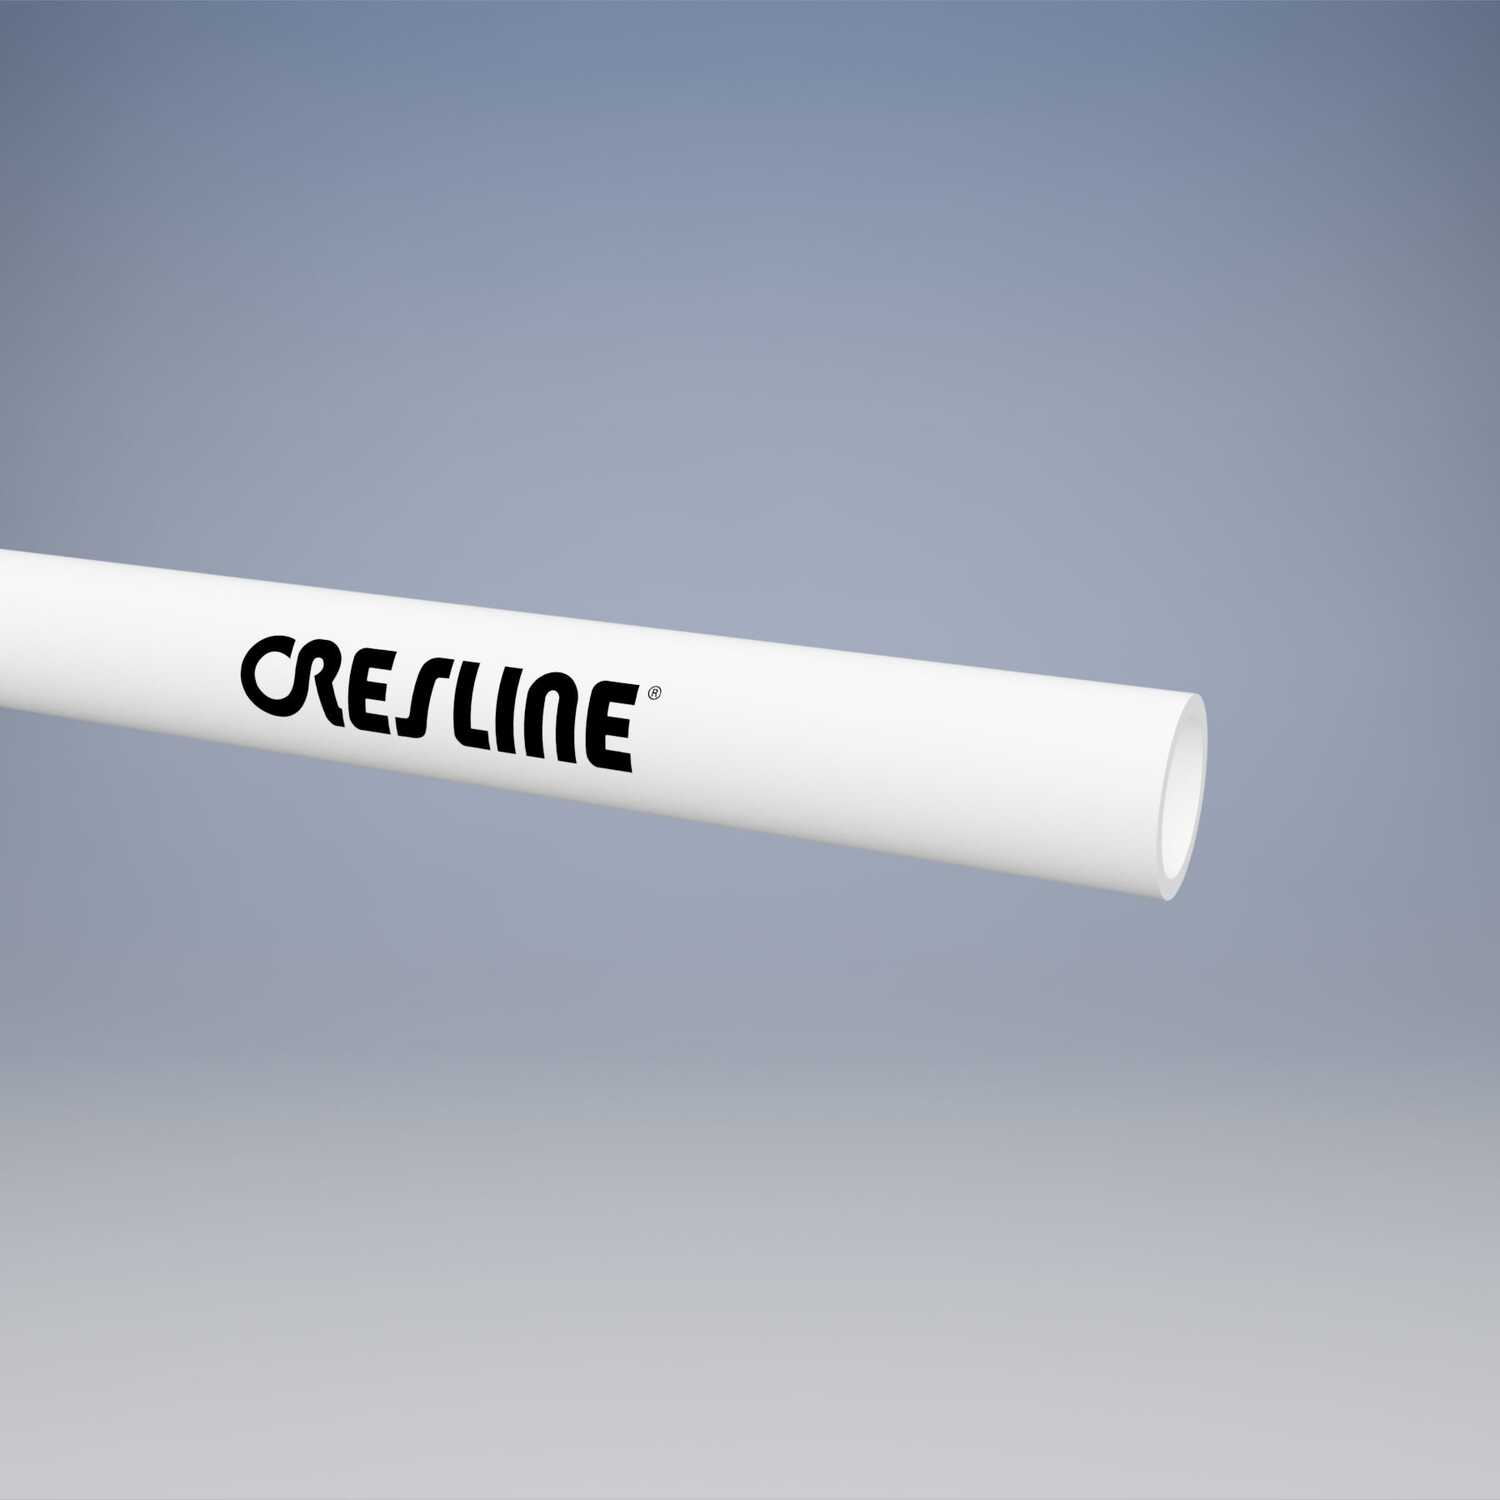 Cresline  1-1/2 in. Dia. x 10 ft. L Pressure Pipe